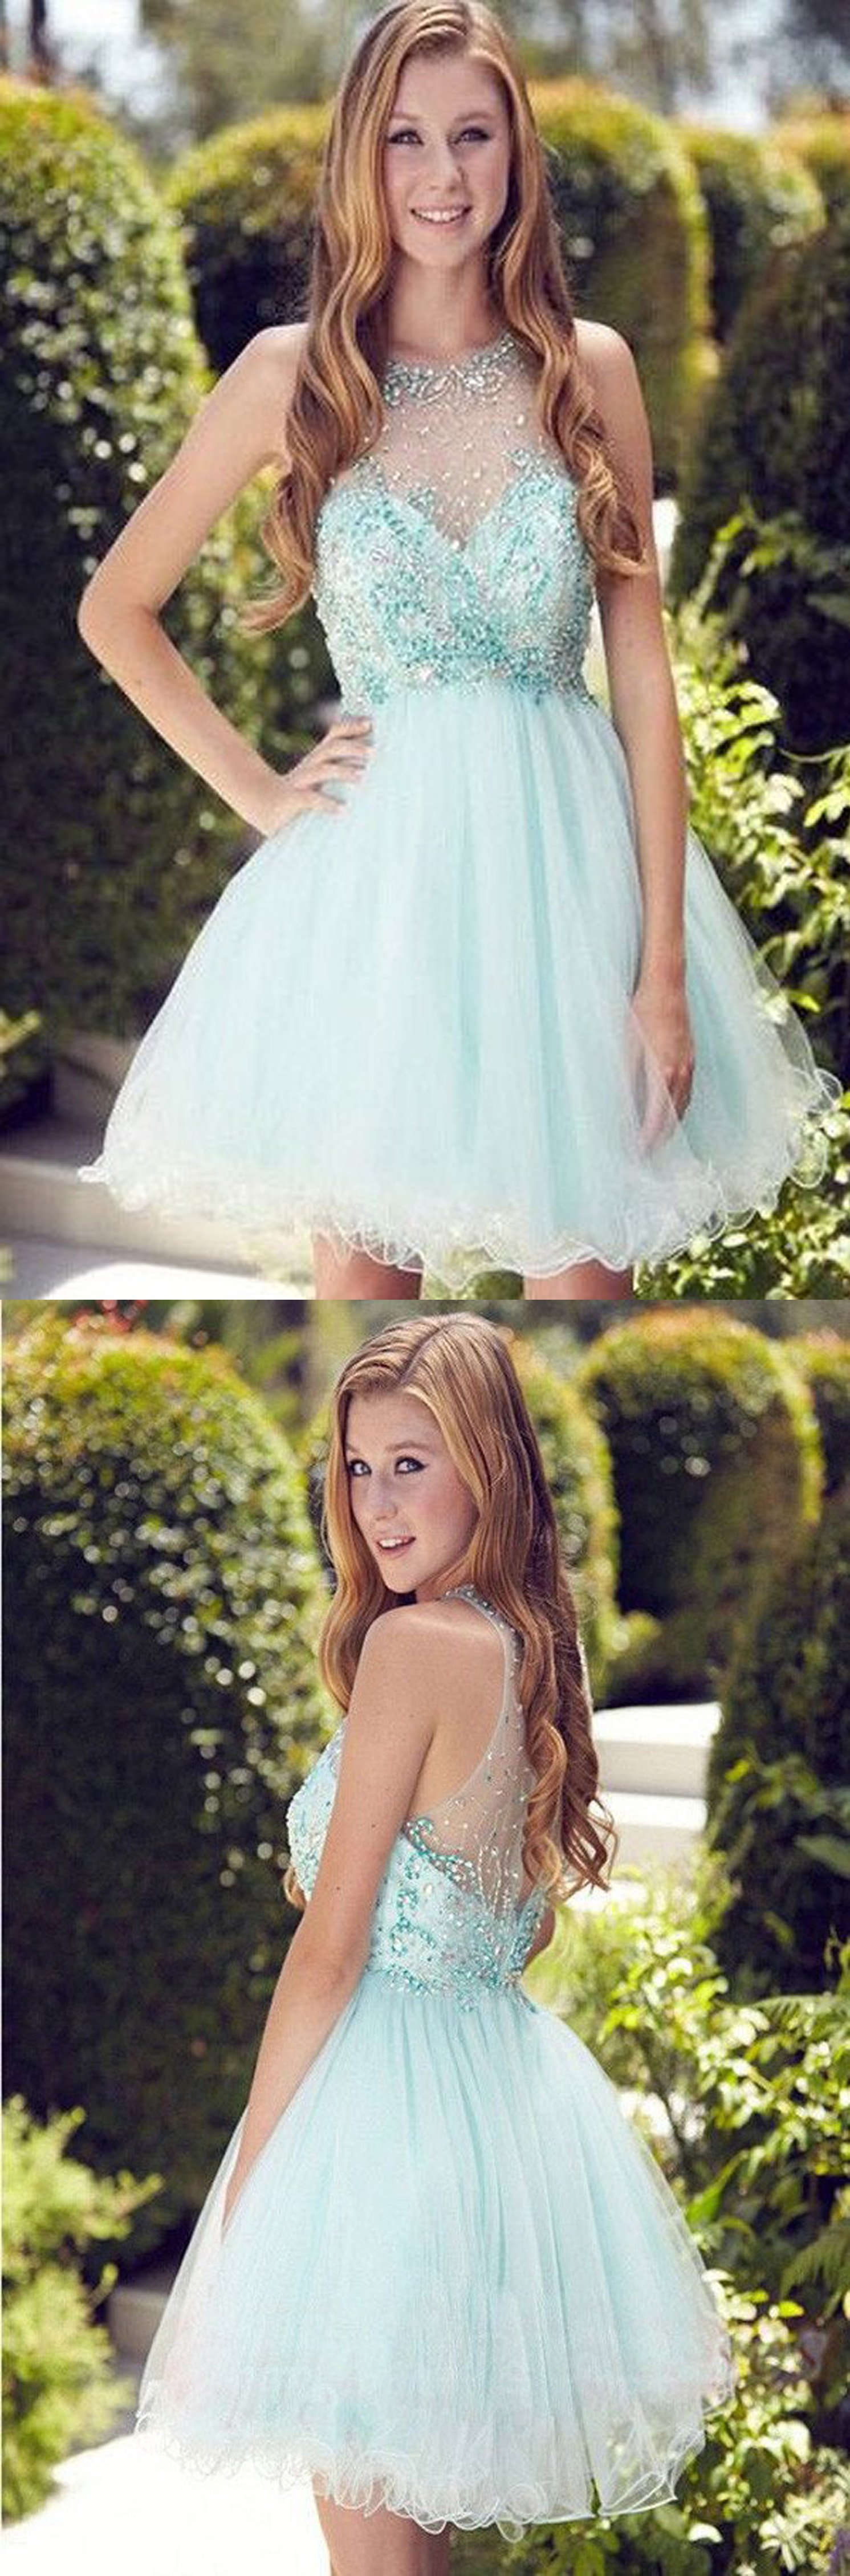 Elegant light blue short prom dresshomecoming dressparty dress for